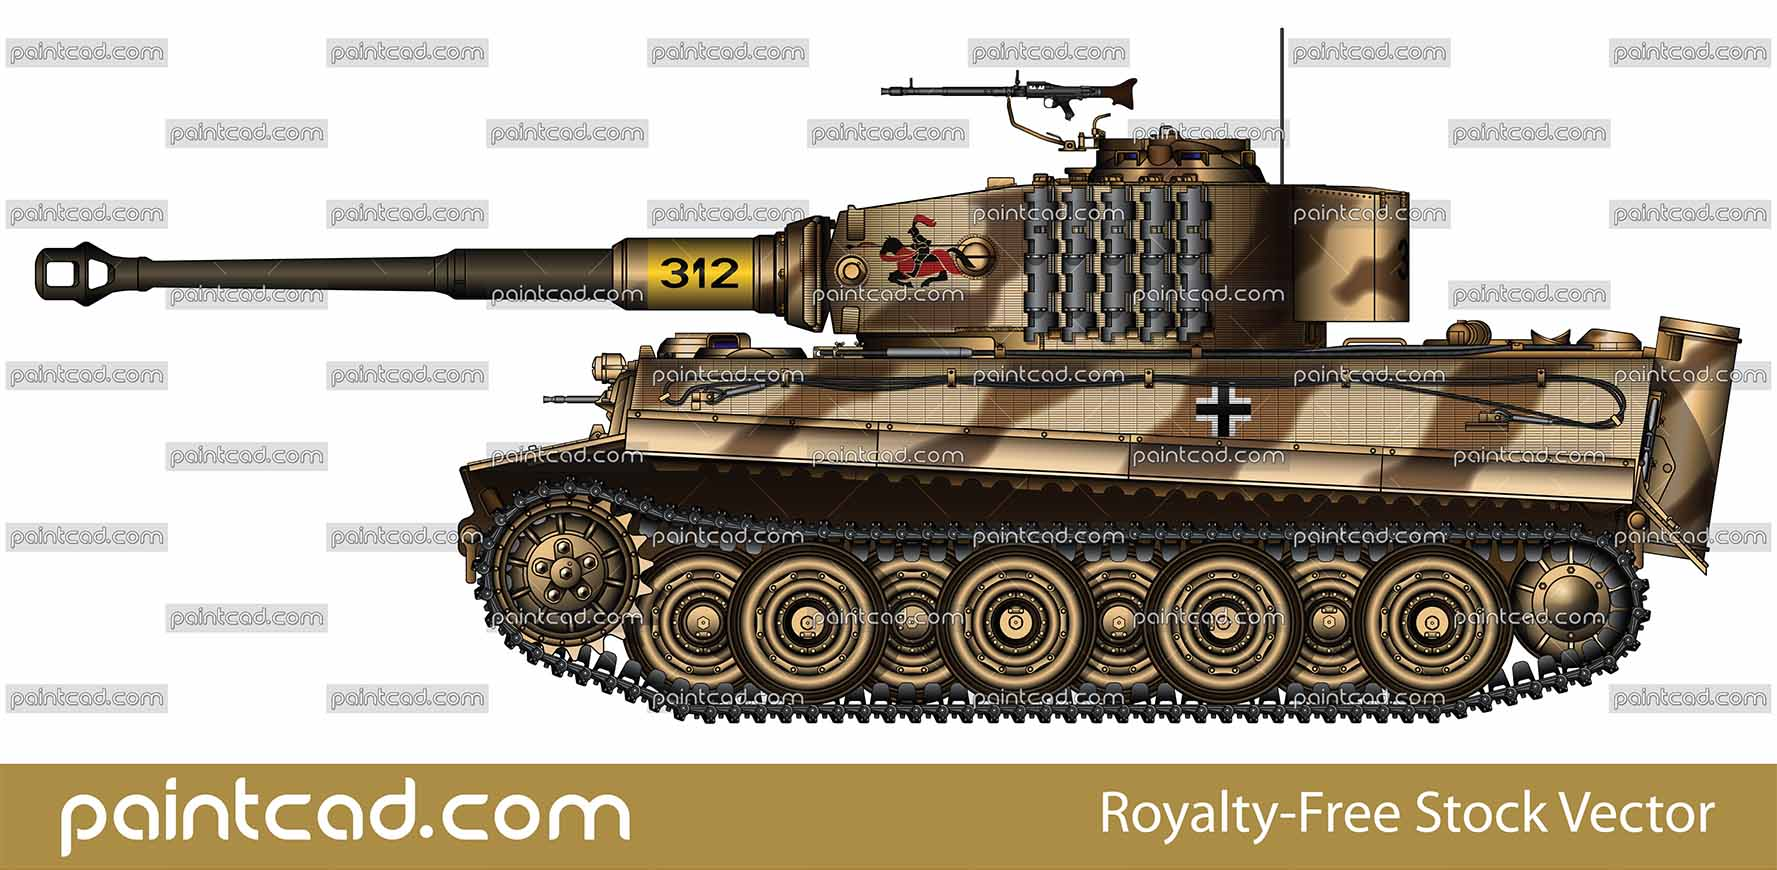 "Vector illustration with side view of heavy German tank PzKpfw VI Tiger I Ausf. E used by Nazi in USSR trough 1944. On turret is mounted machine gun MG 34 and painted a ""red"" knight on horse with pike- insignia of the 505th heavy panzer battalion. The tactical number ""312"" of the tank is painted on the cannon over yellow background. Armored fighting vehicle with zimmerit cover used against magnetically attached anti-tank mines. High quality color drawing. Isolated object over white background."